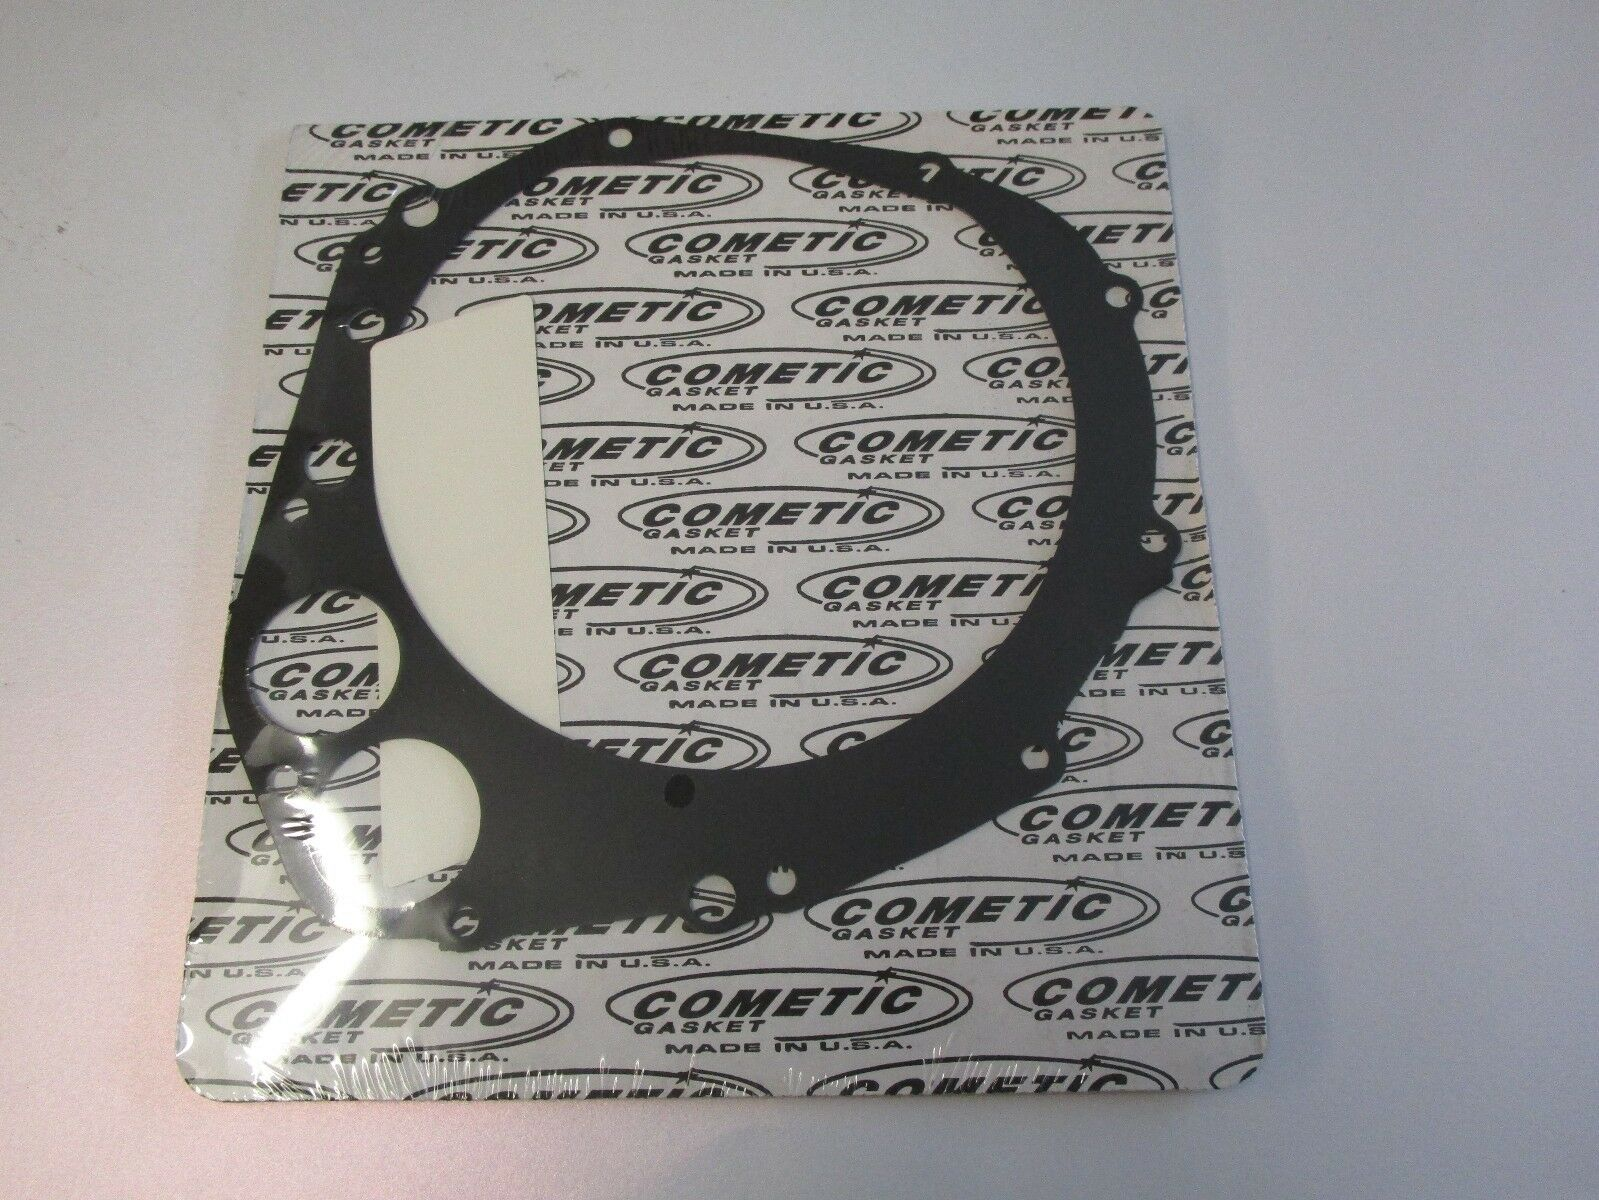 hd  Reusable., Suzuki GSX1300R Hayabusa Radical Cometic Sump gasket